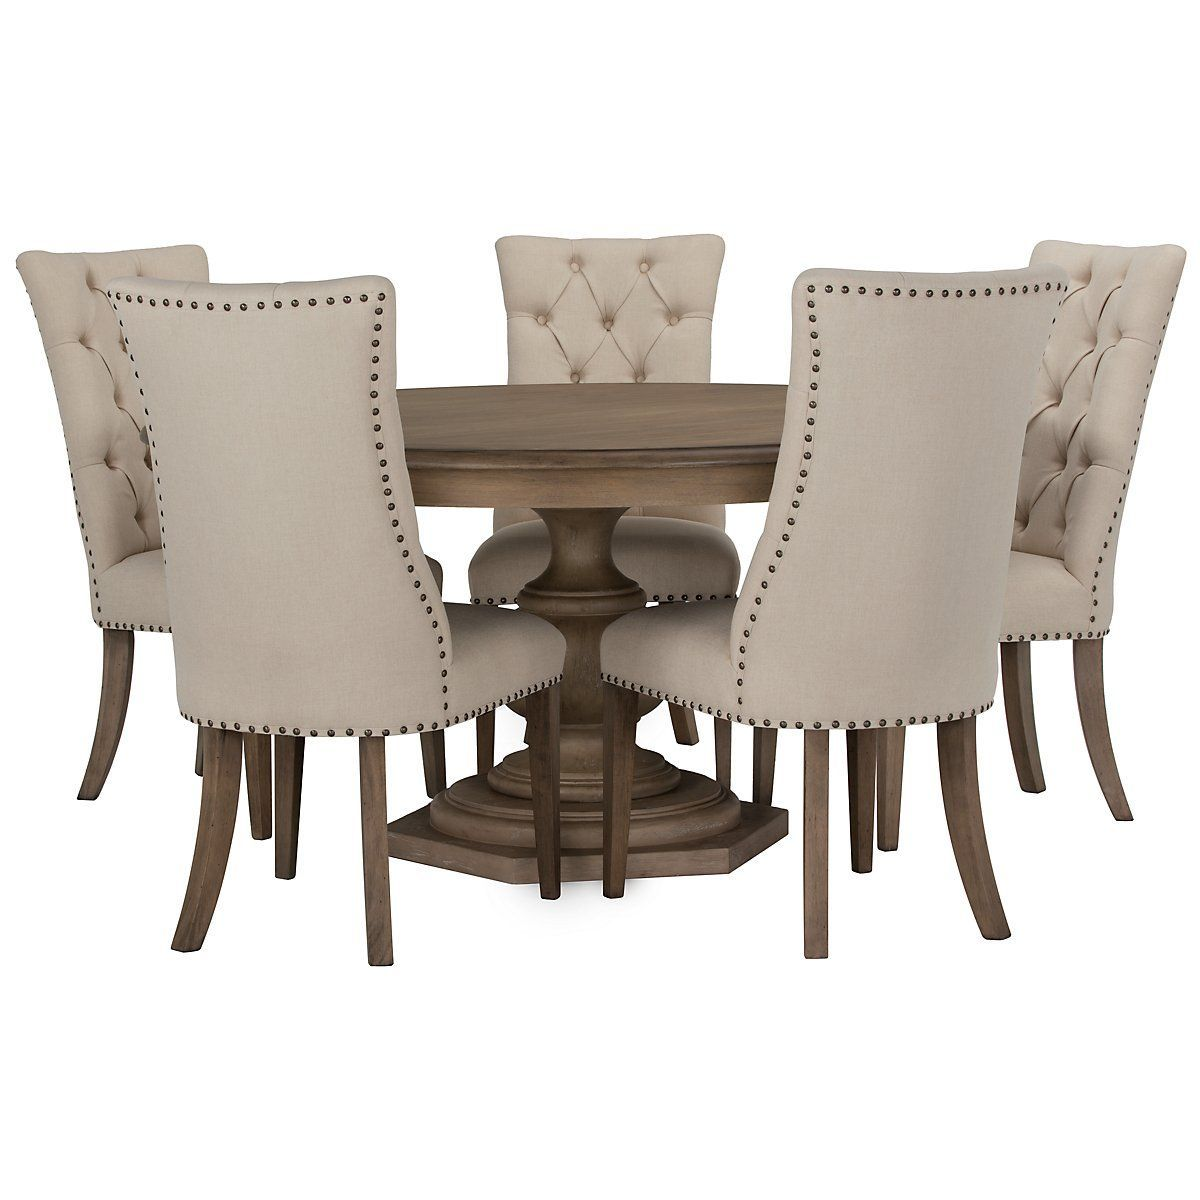 Includes Round Dining Table And Four Upholstered Chairs Put